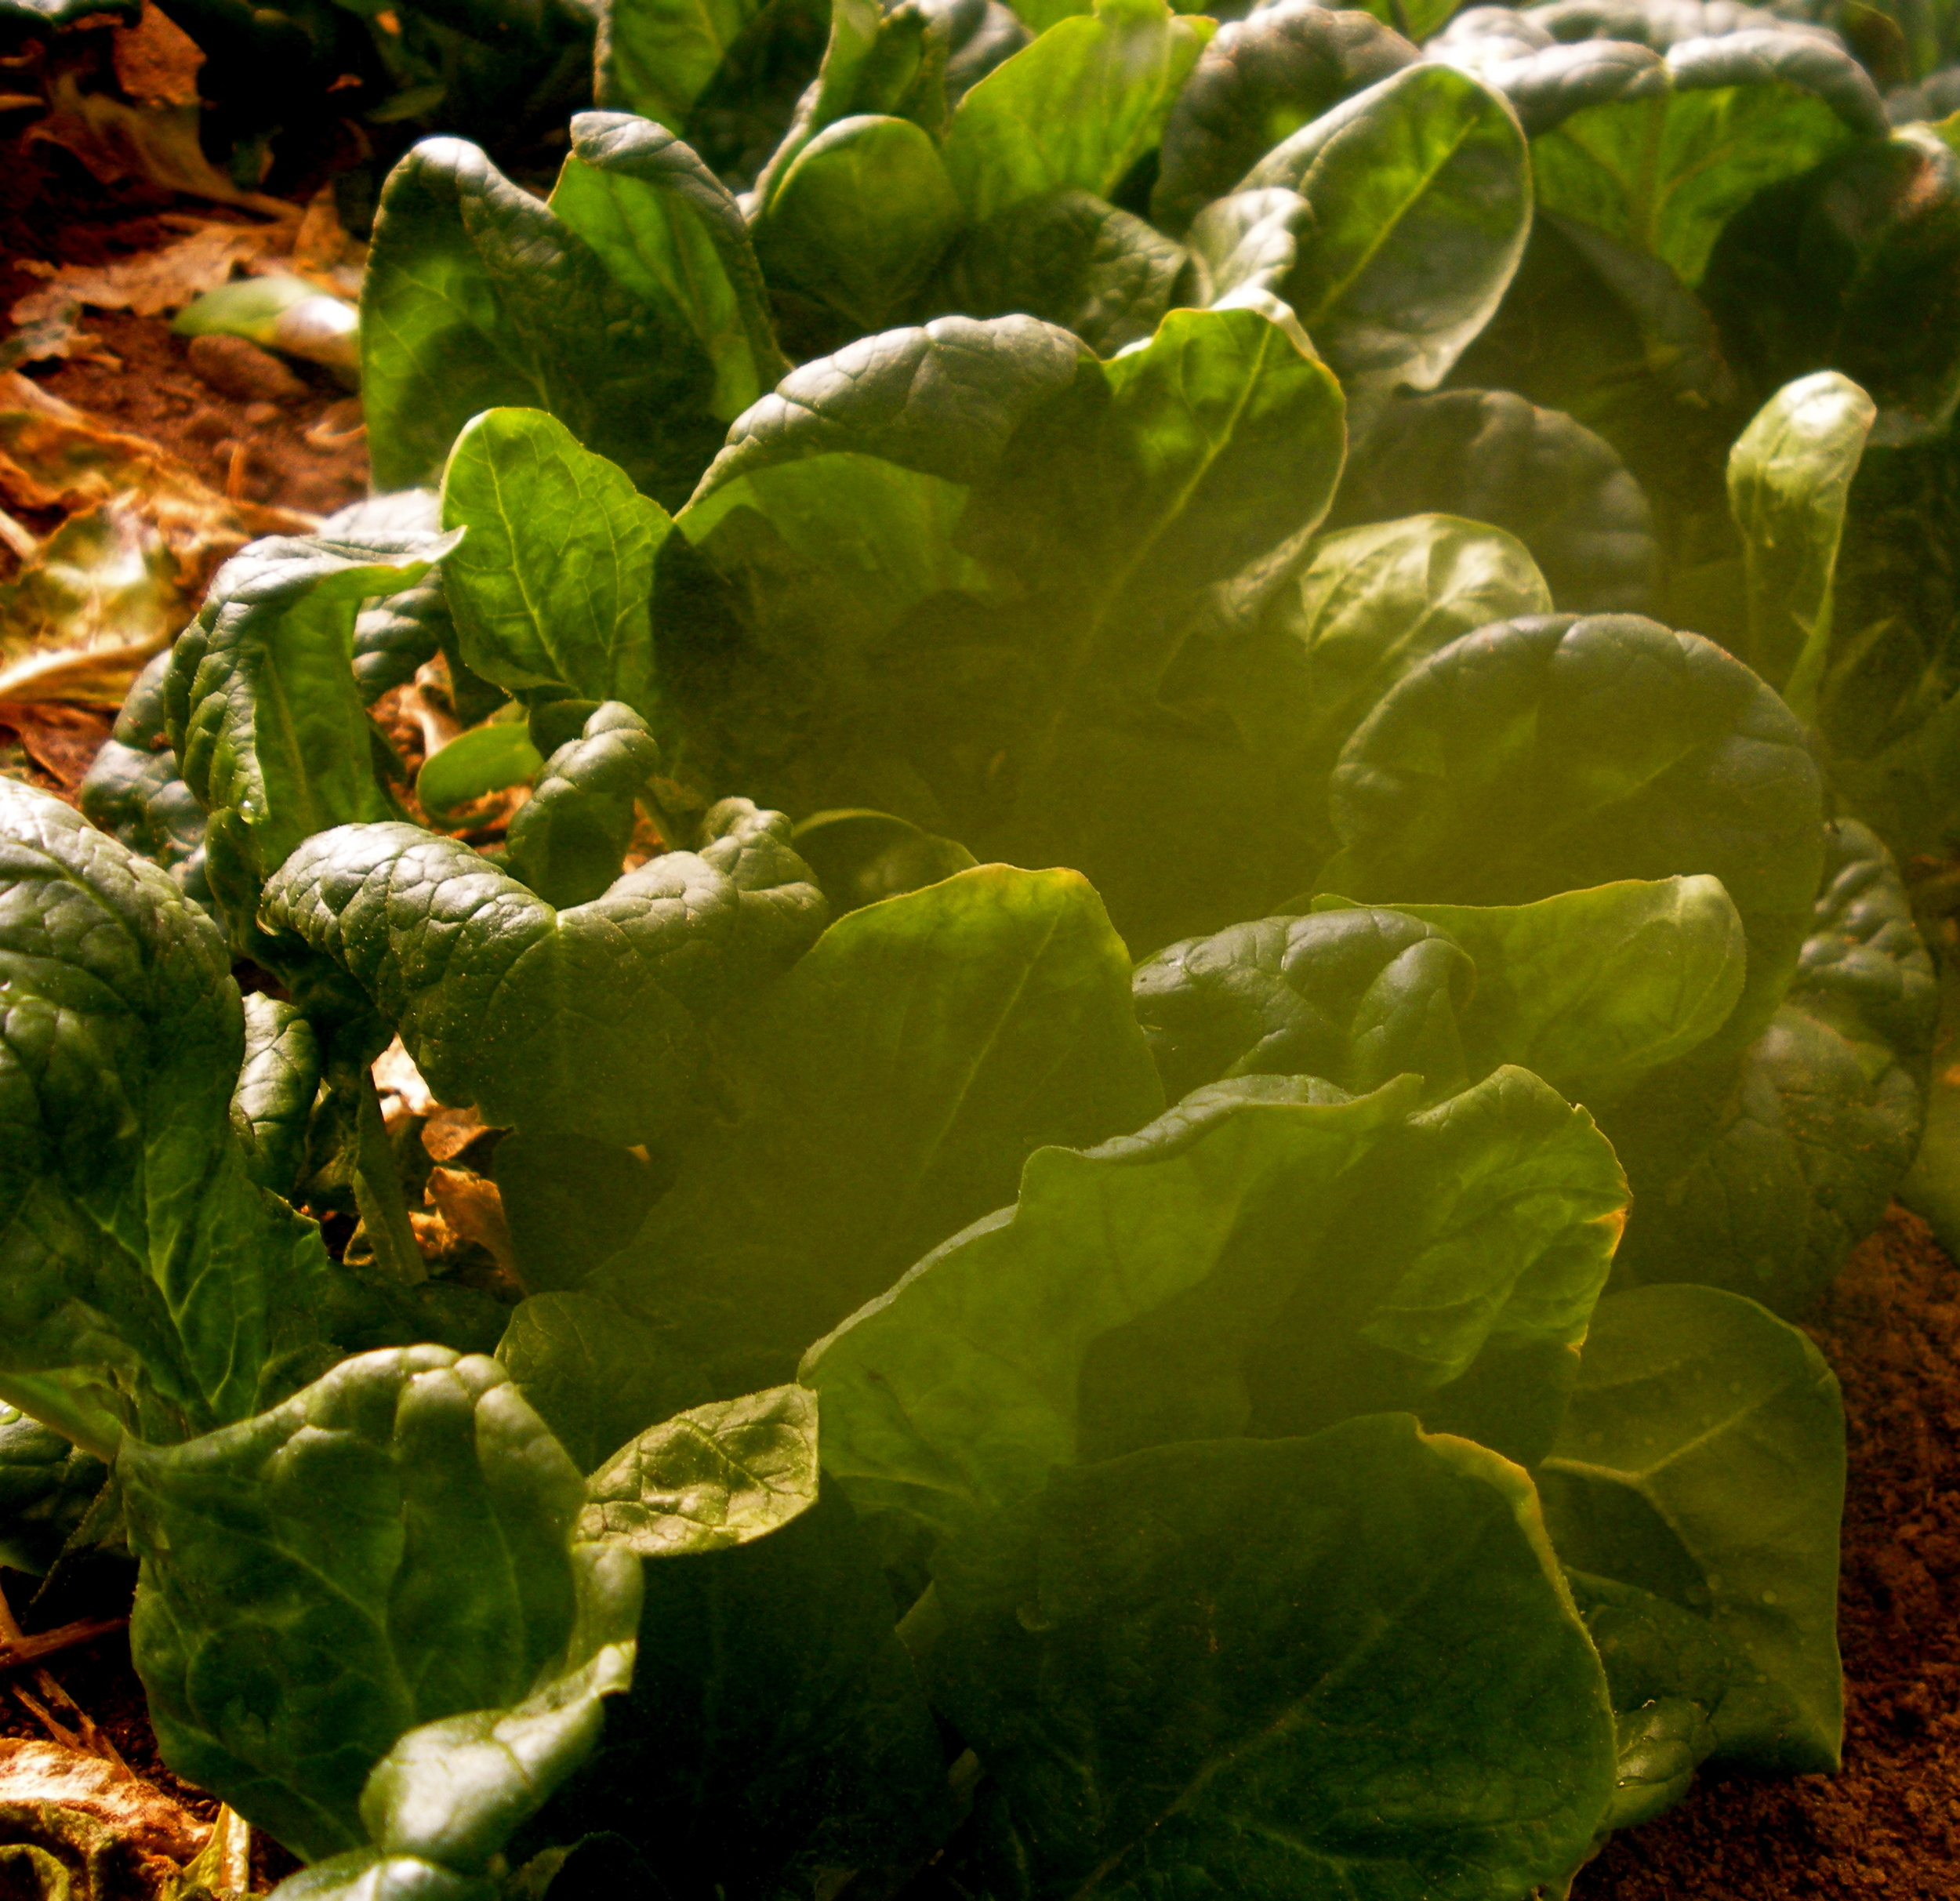 Dal: A good place for spinach. (A.Gross, February 2014)